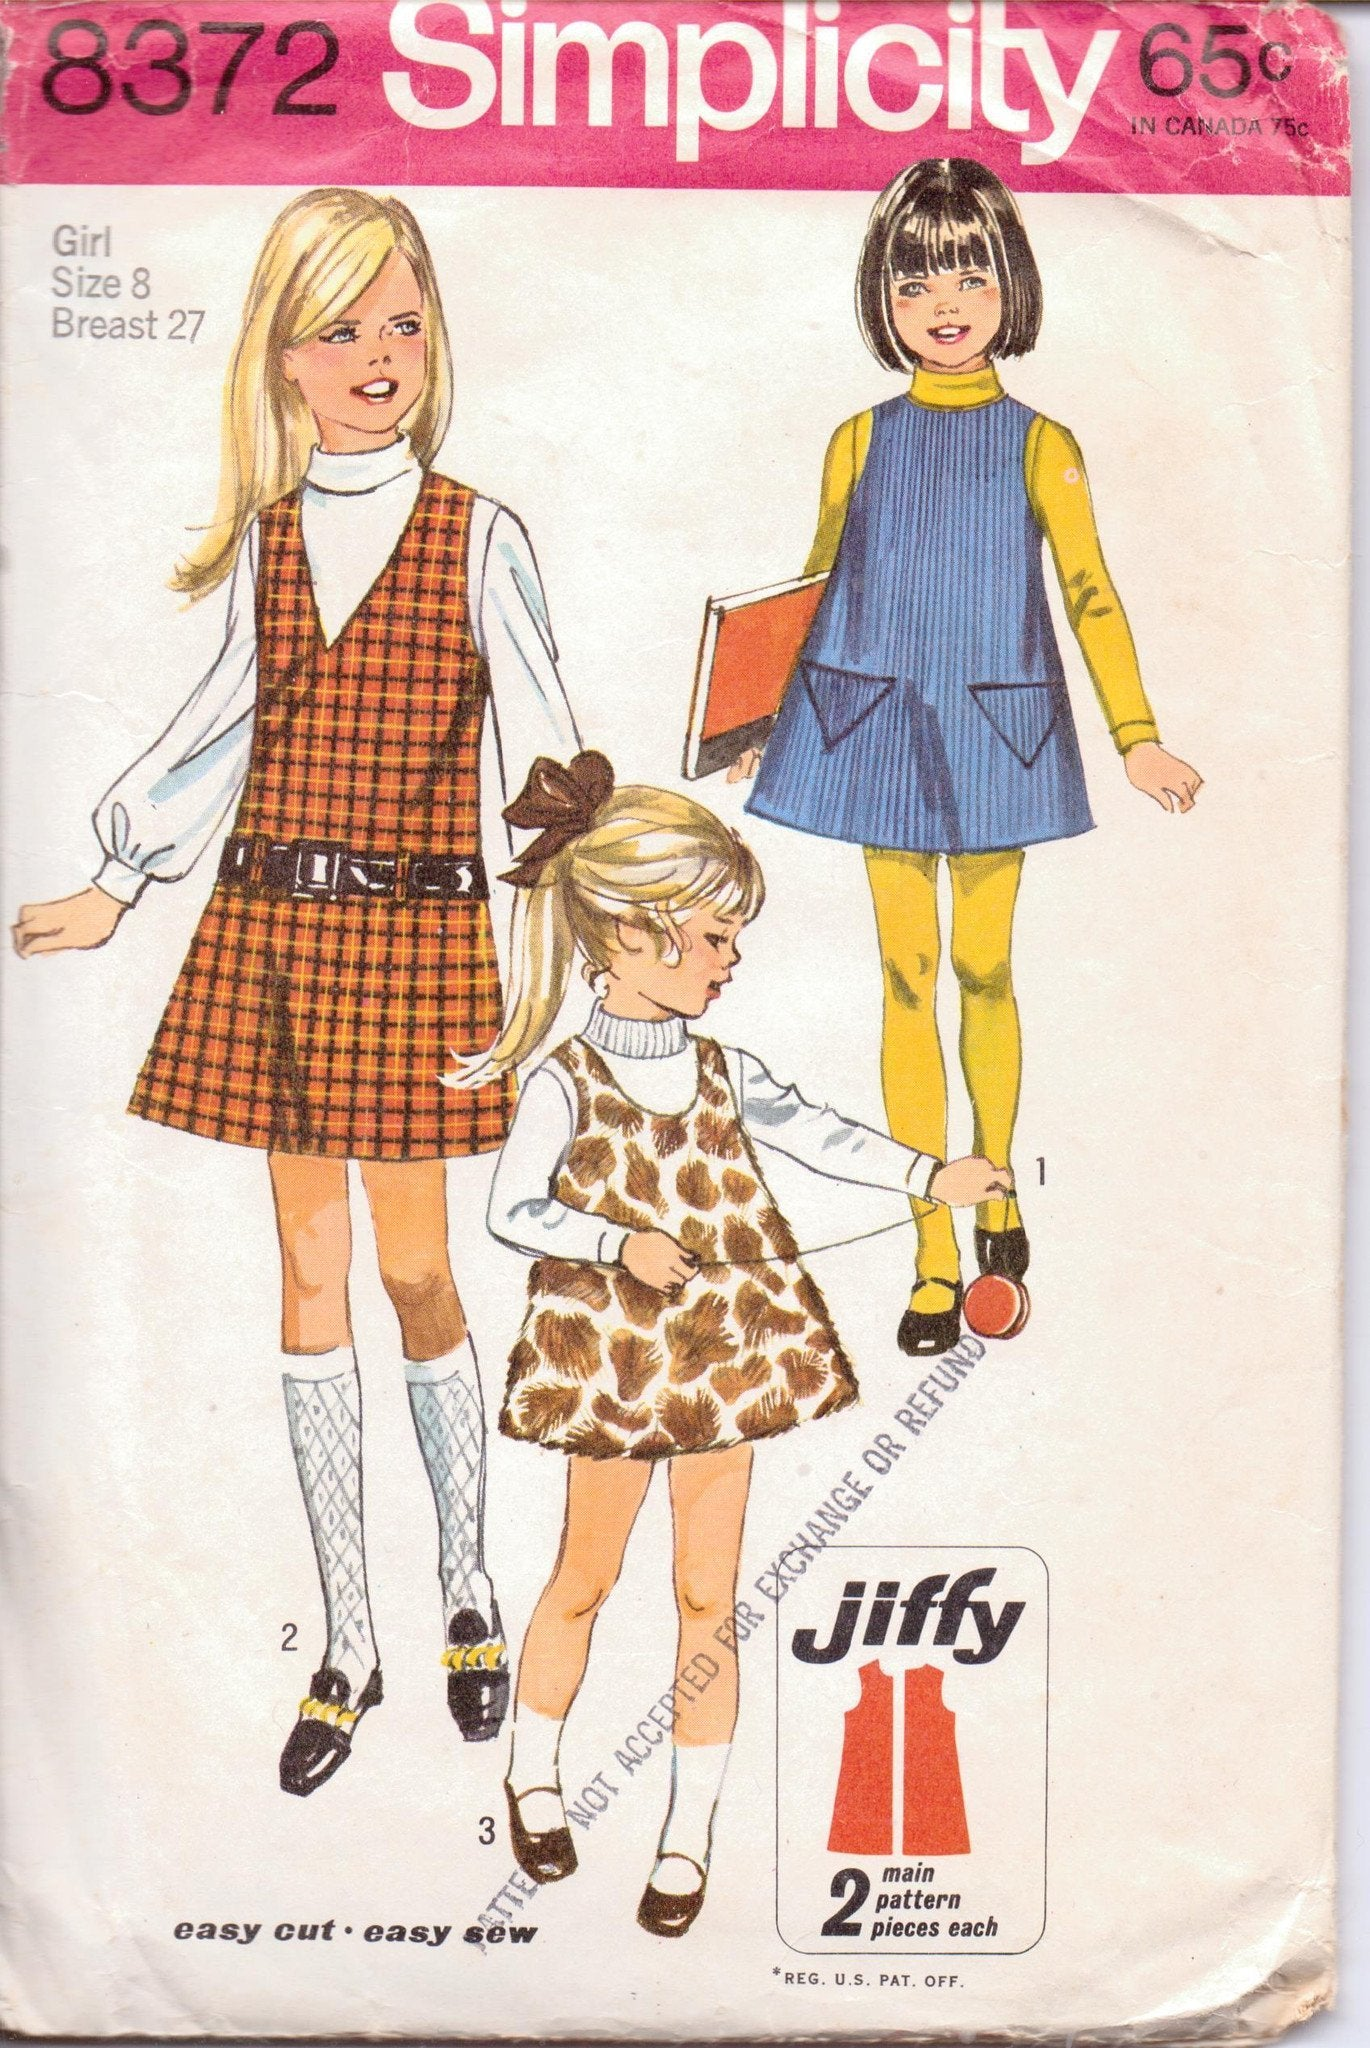 Simplicity 8372 Little Girls Jumper Dress Vintage 1960's Sewing Pattern Jiffy Size 8 Breast 27 - VintageStitching - Vintage Sewing Patterns